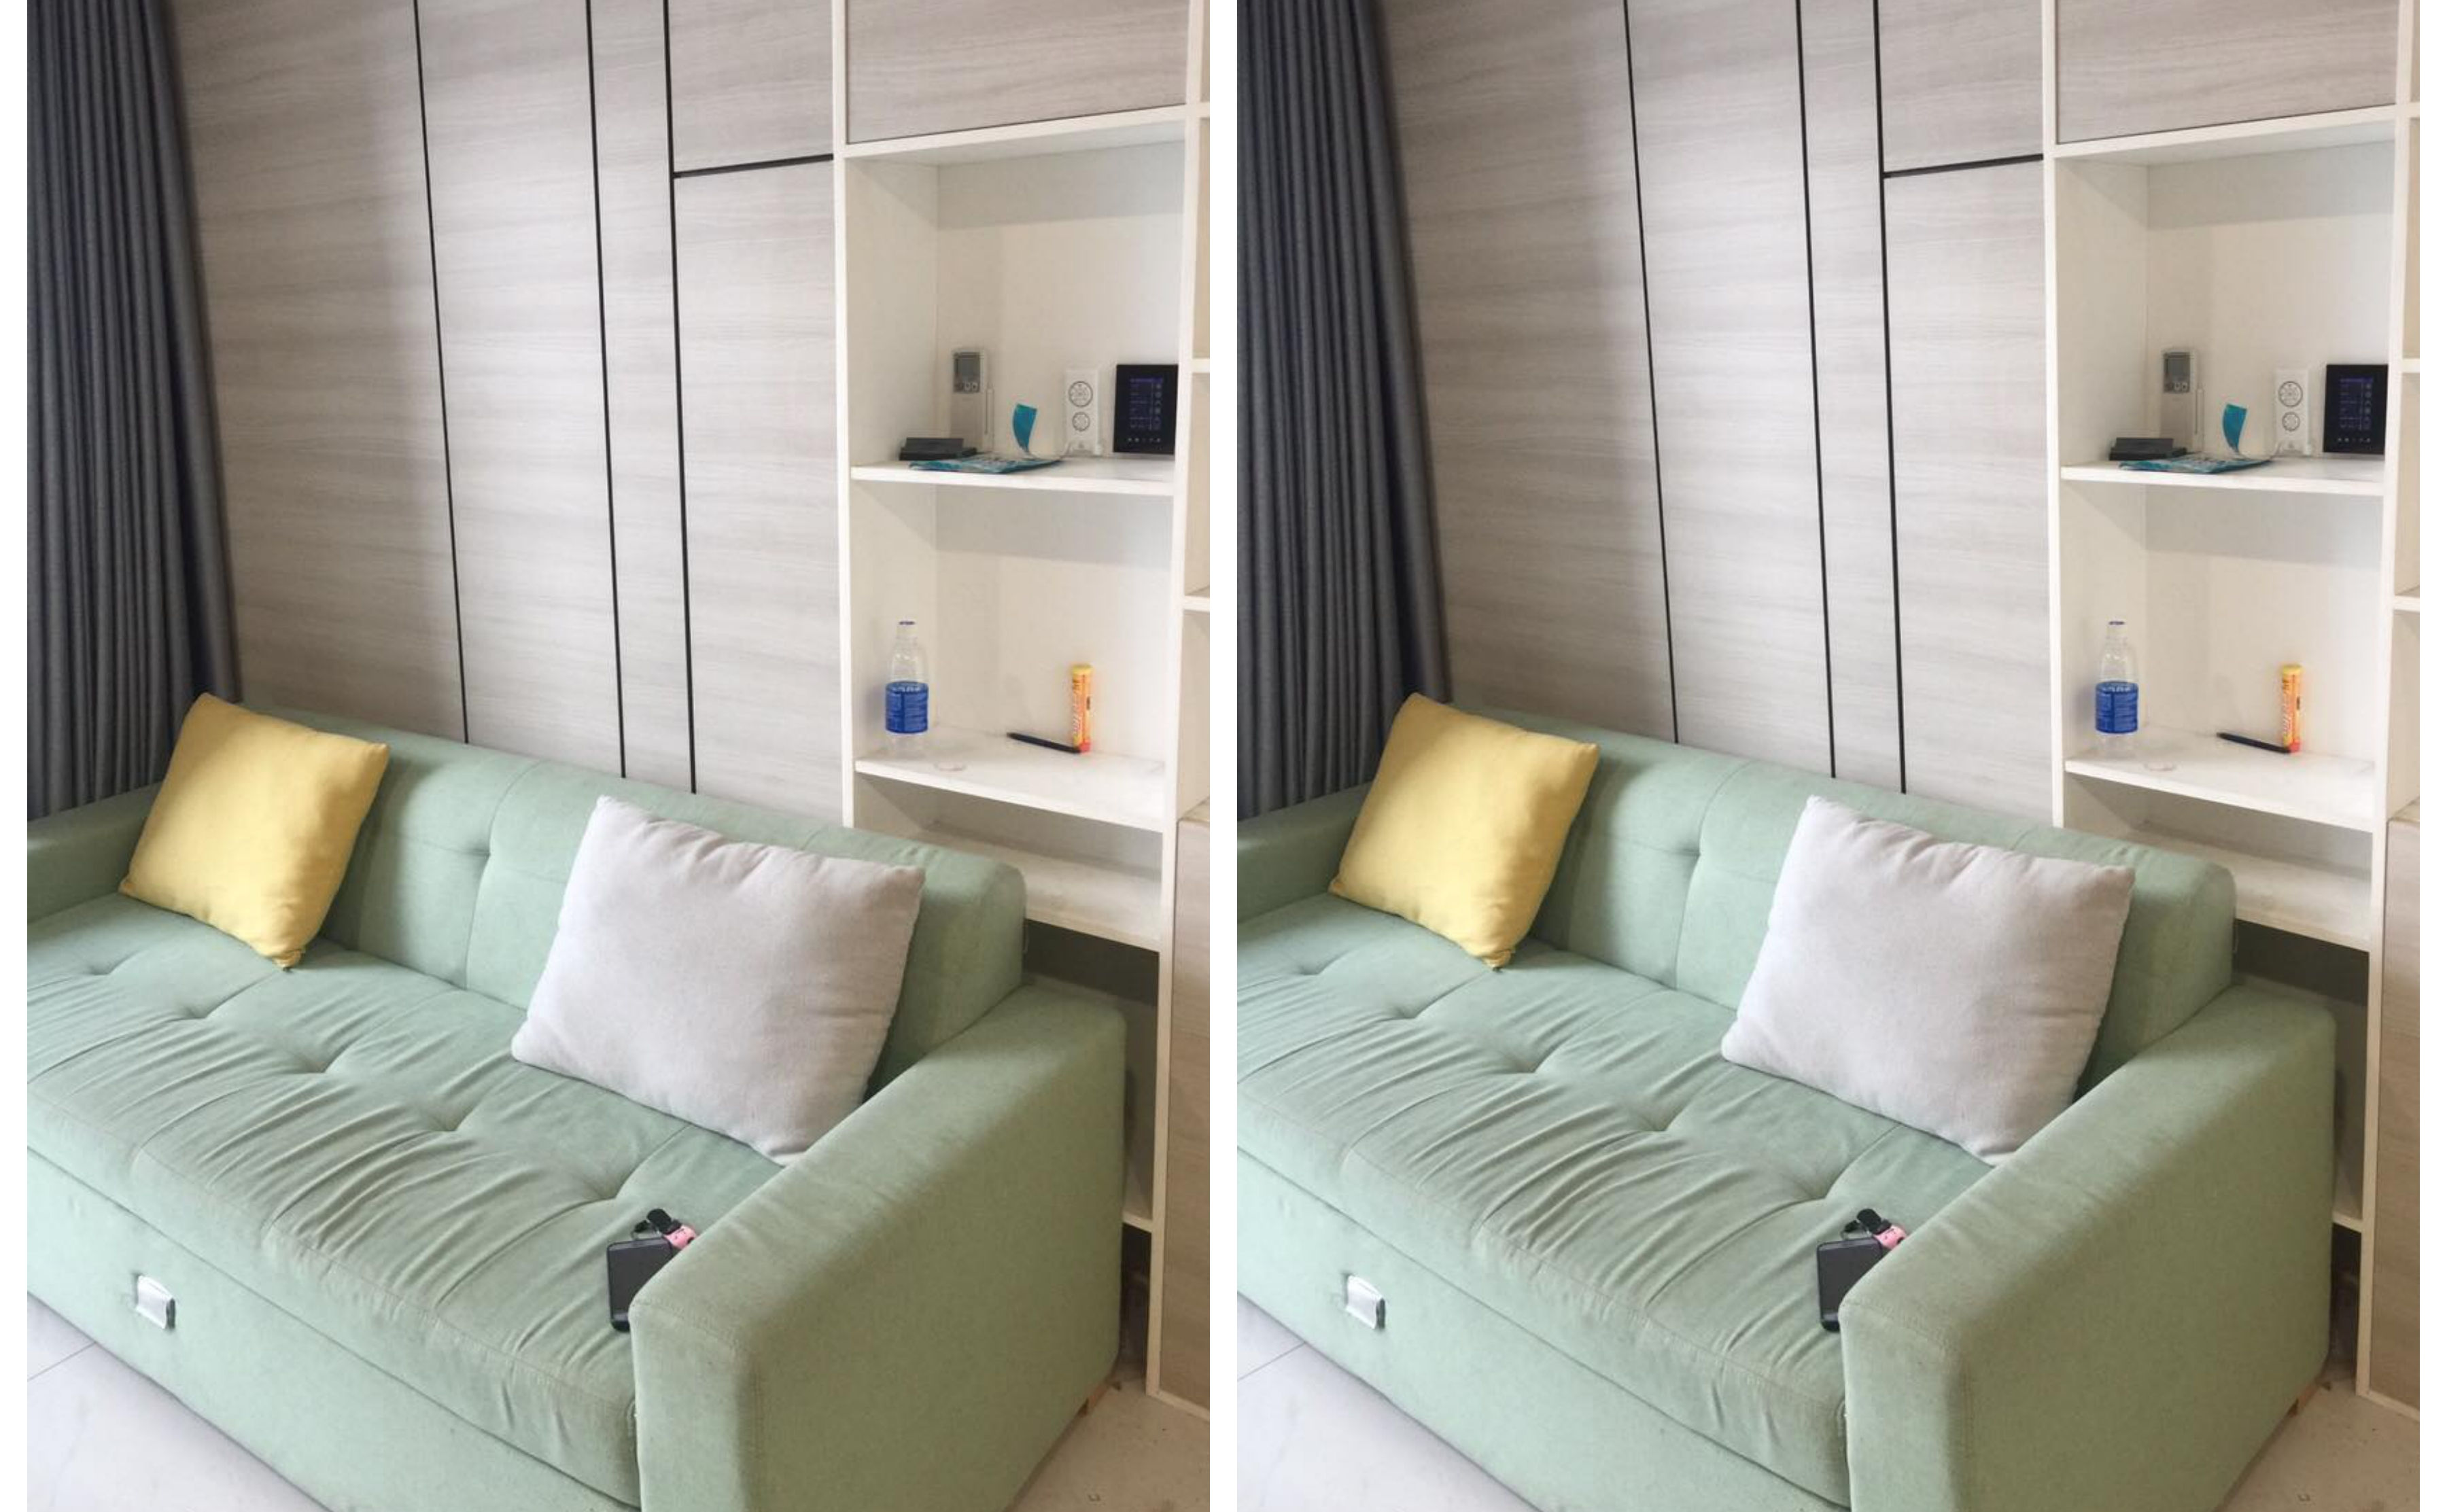 apartment for rent in binh thanh district BT105P3853 (6)